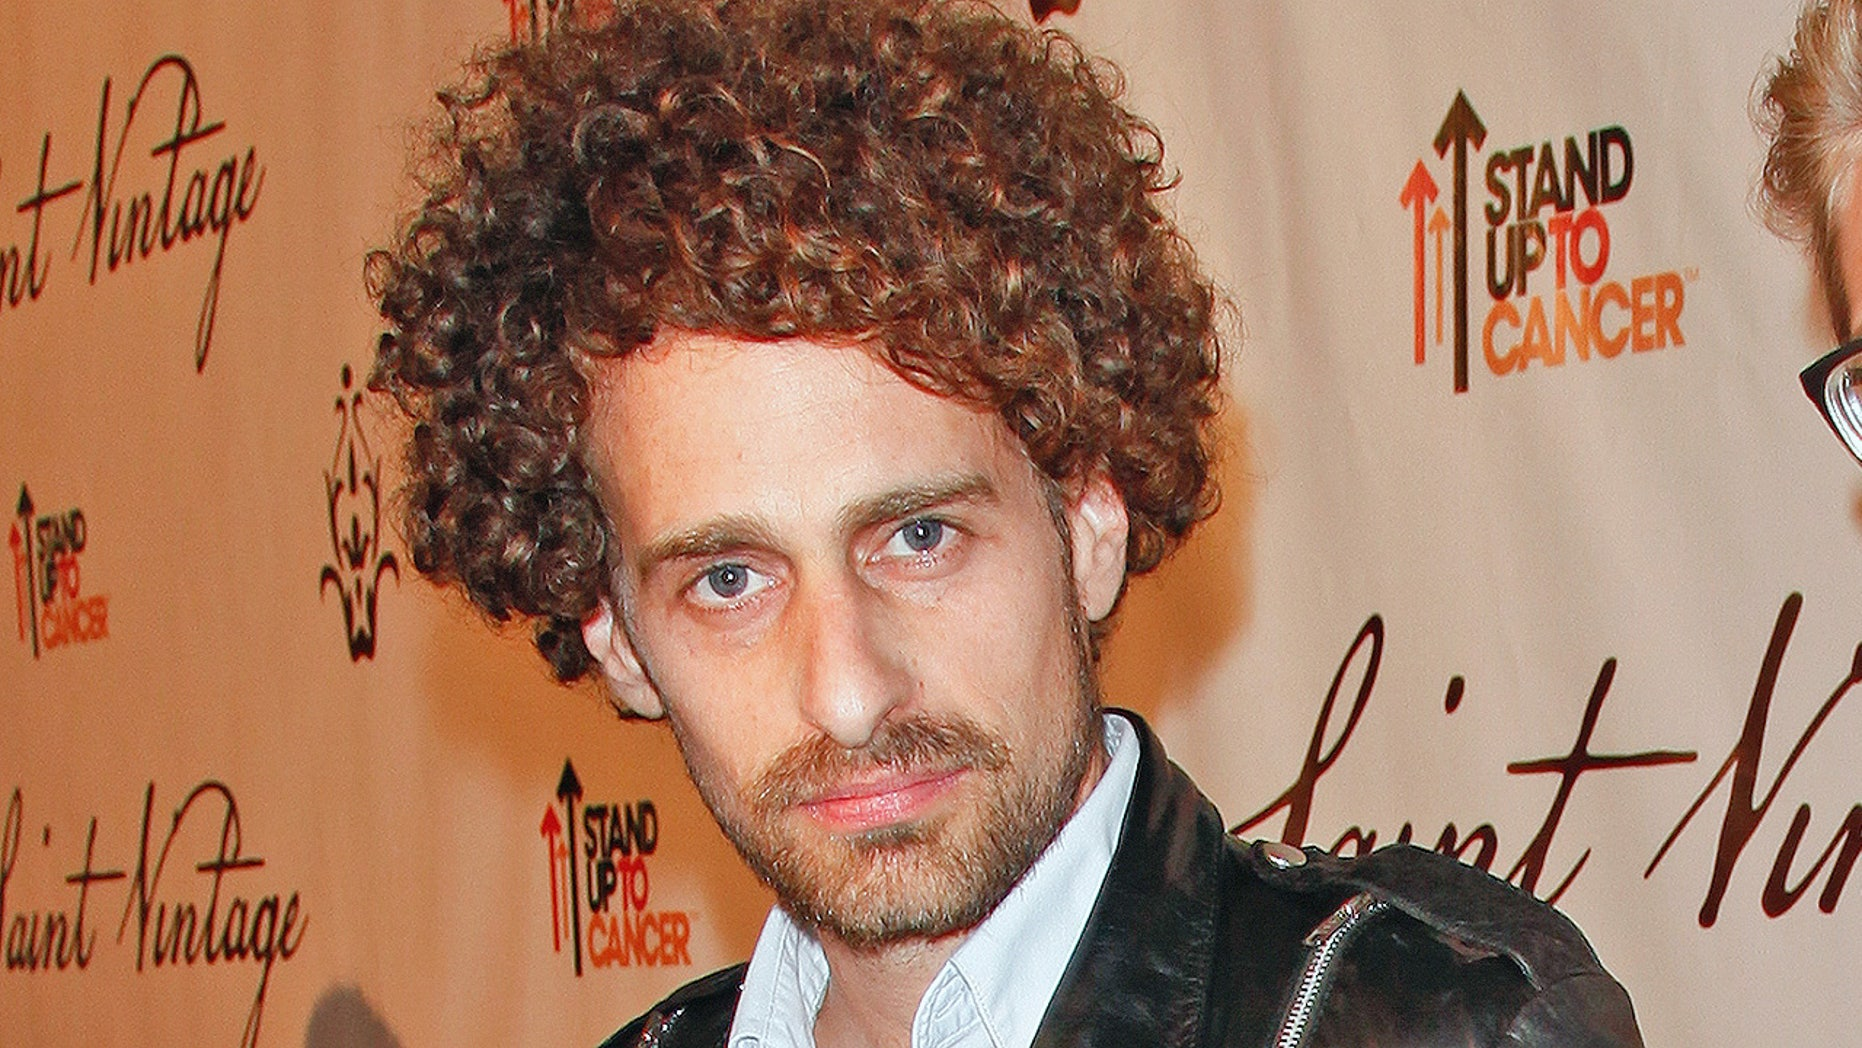 Actor Isaac Kappy died after